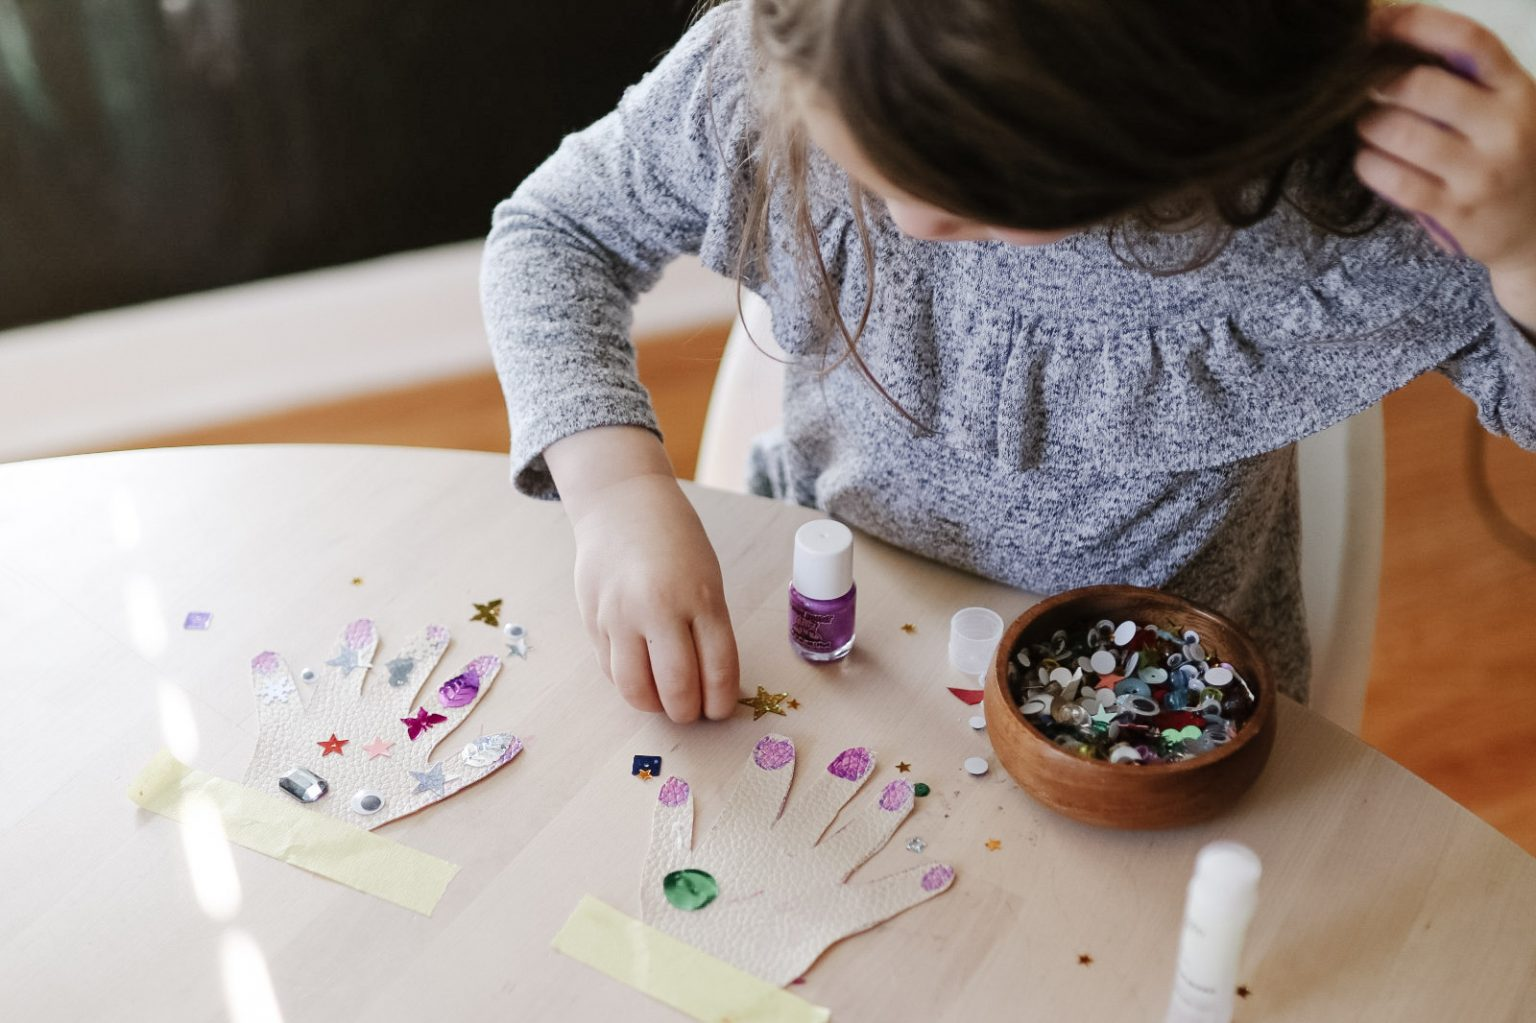 Girl finding things to do at home with kids and doing a craft.